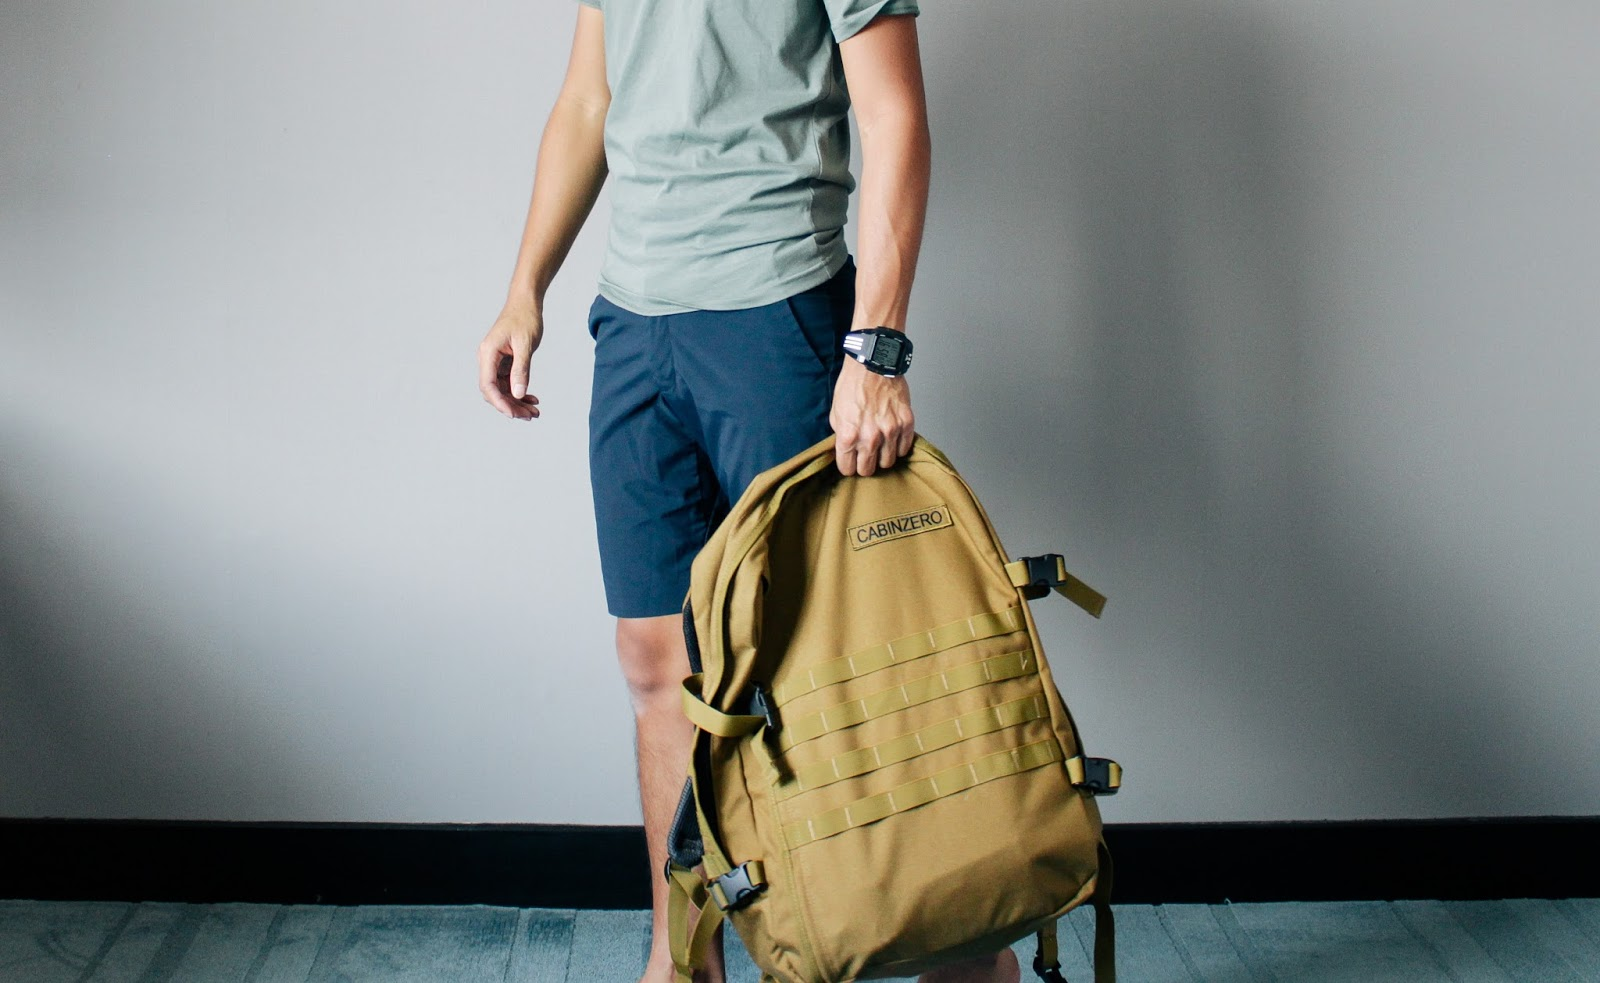 ca659a52e9 That s how I noticed the existence of Cabin Zero. I keep on browsing  through their website to see some cool collection of bags ever since I saw  Jac s.